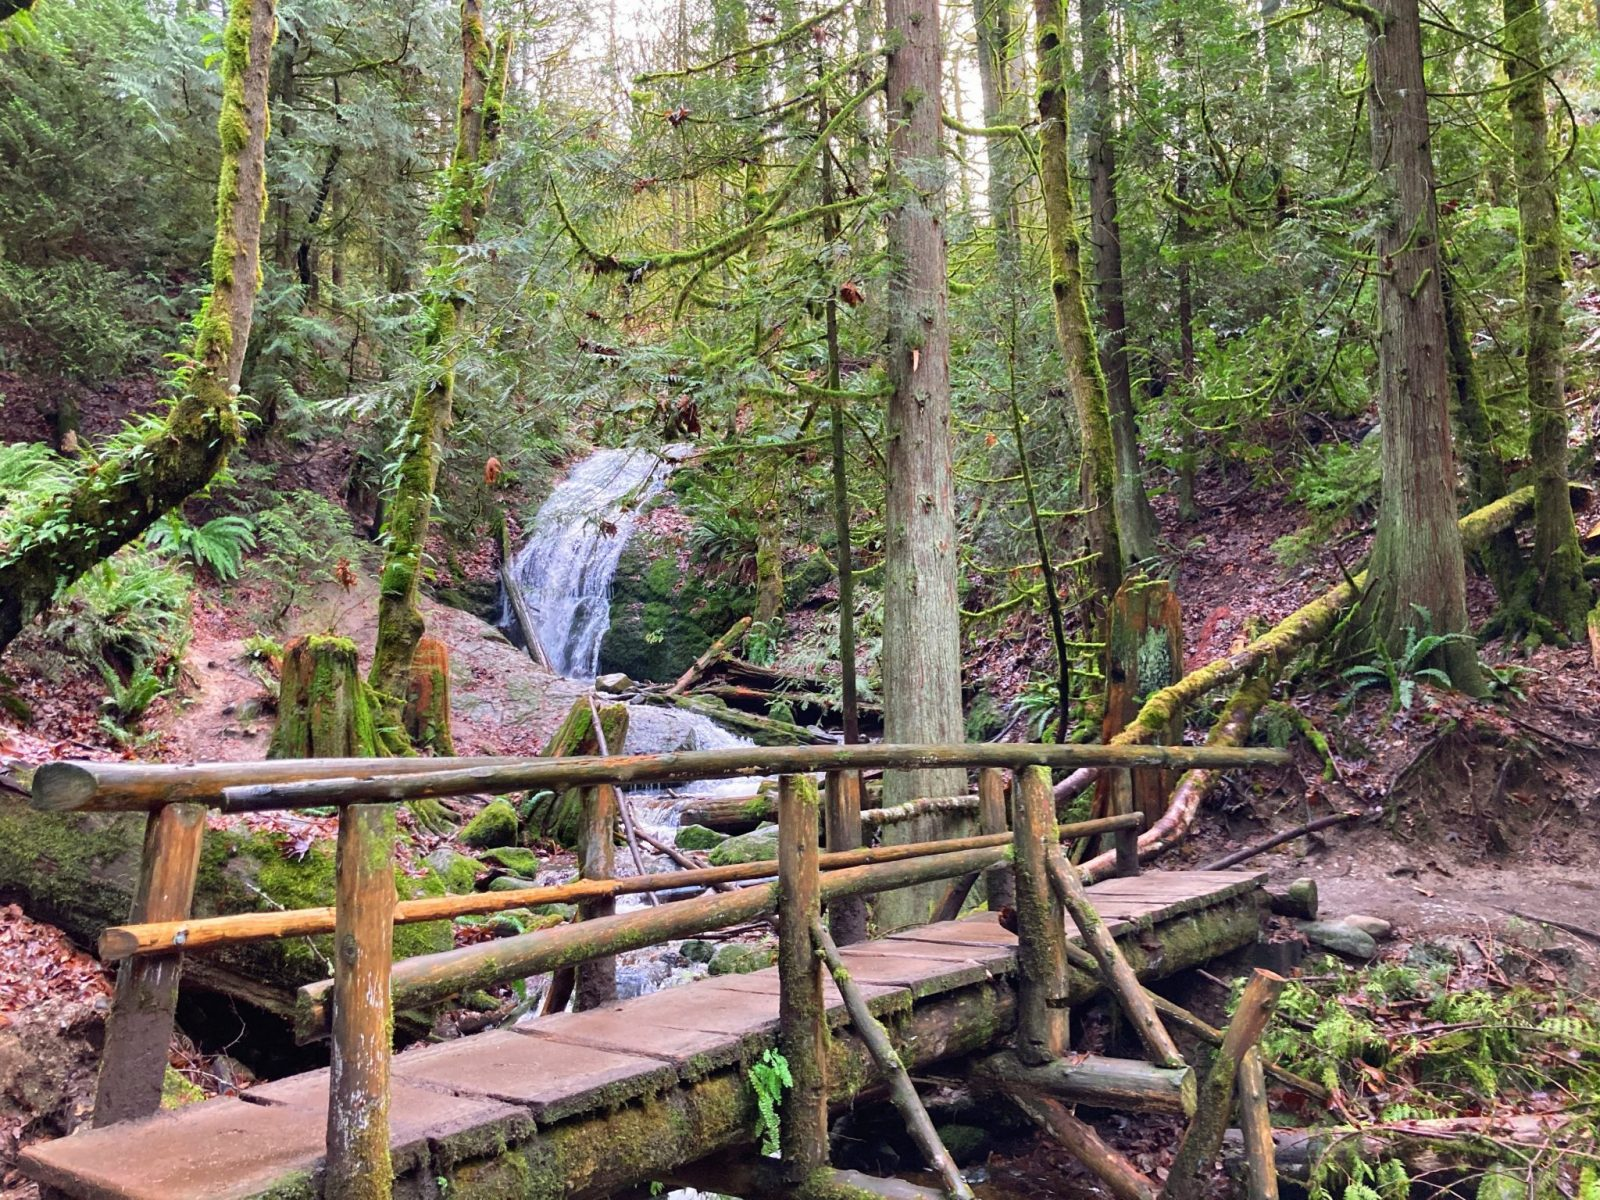 A Coal Creek Falls comes over a mossy rock face in the forest. In the foreground, a log pedestrian bridge crosses the creek below the waterfall